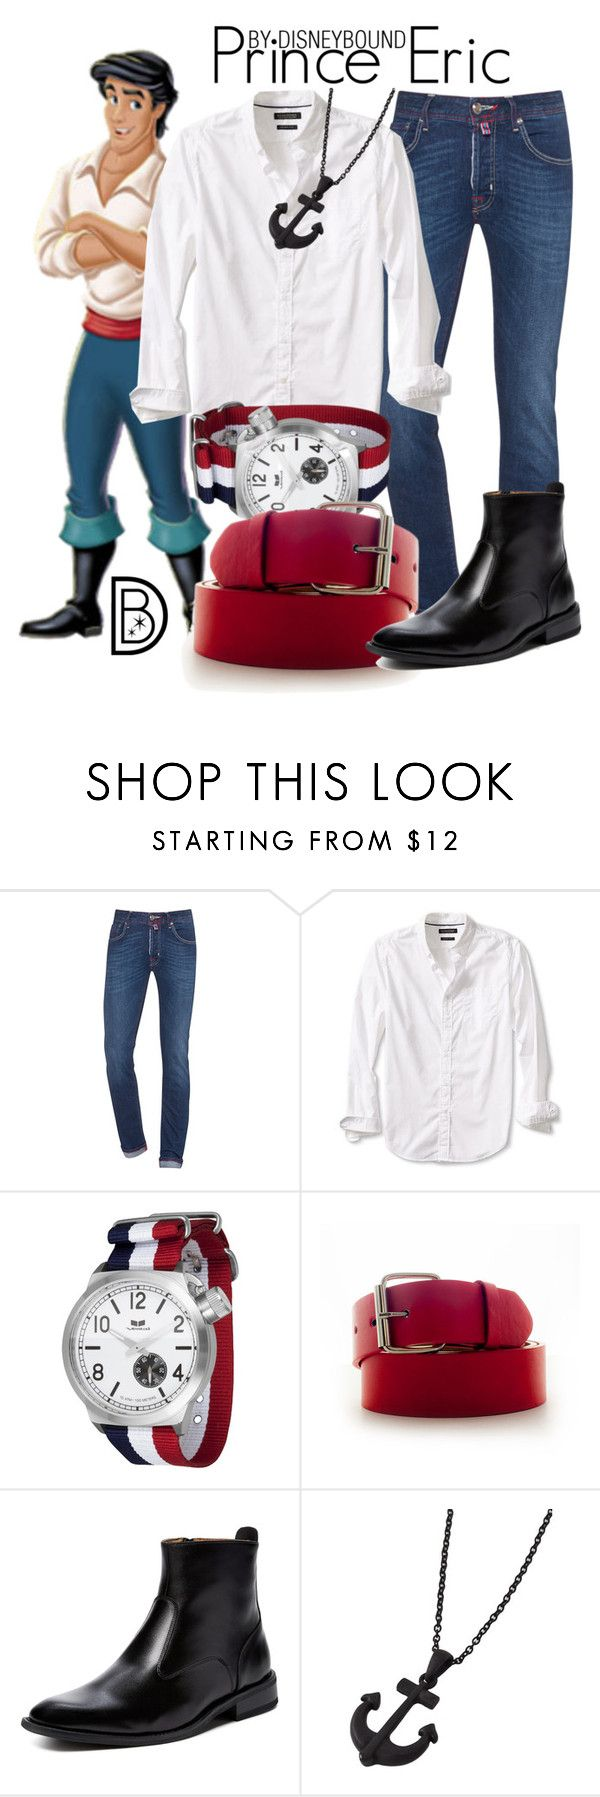 """""""Prince Eric"""" by leslieakay ❤ liked on Polyvore featuring Jacob Cohёn, Banana Republic, Vestal, Faddism, Giorgio Brutini, men's fashion, menswear, disney and disneybound"""